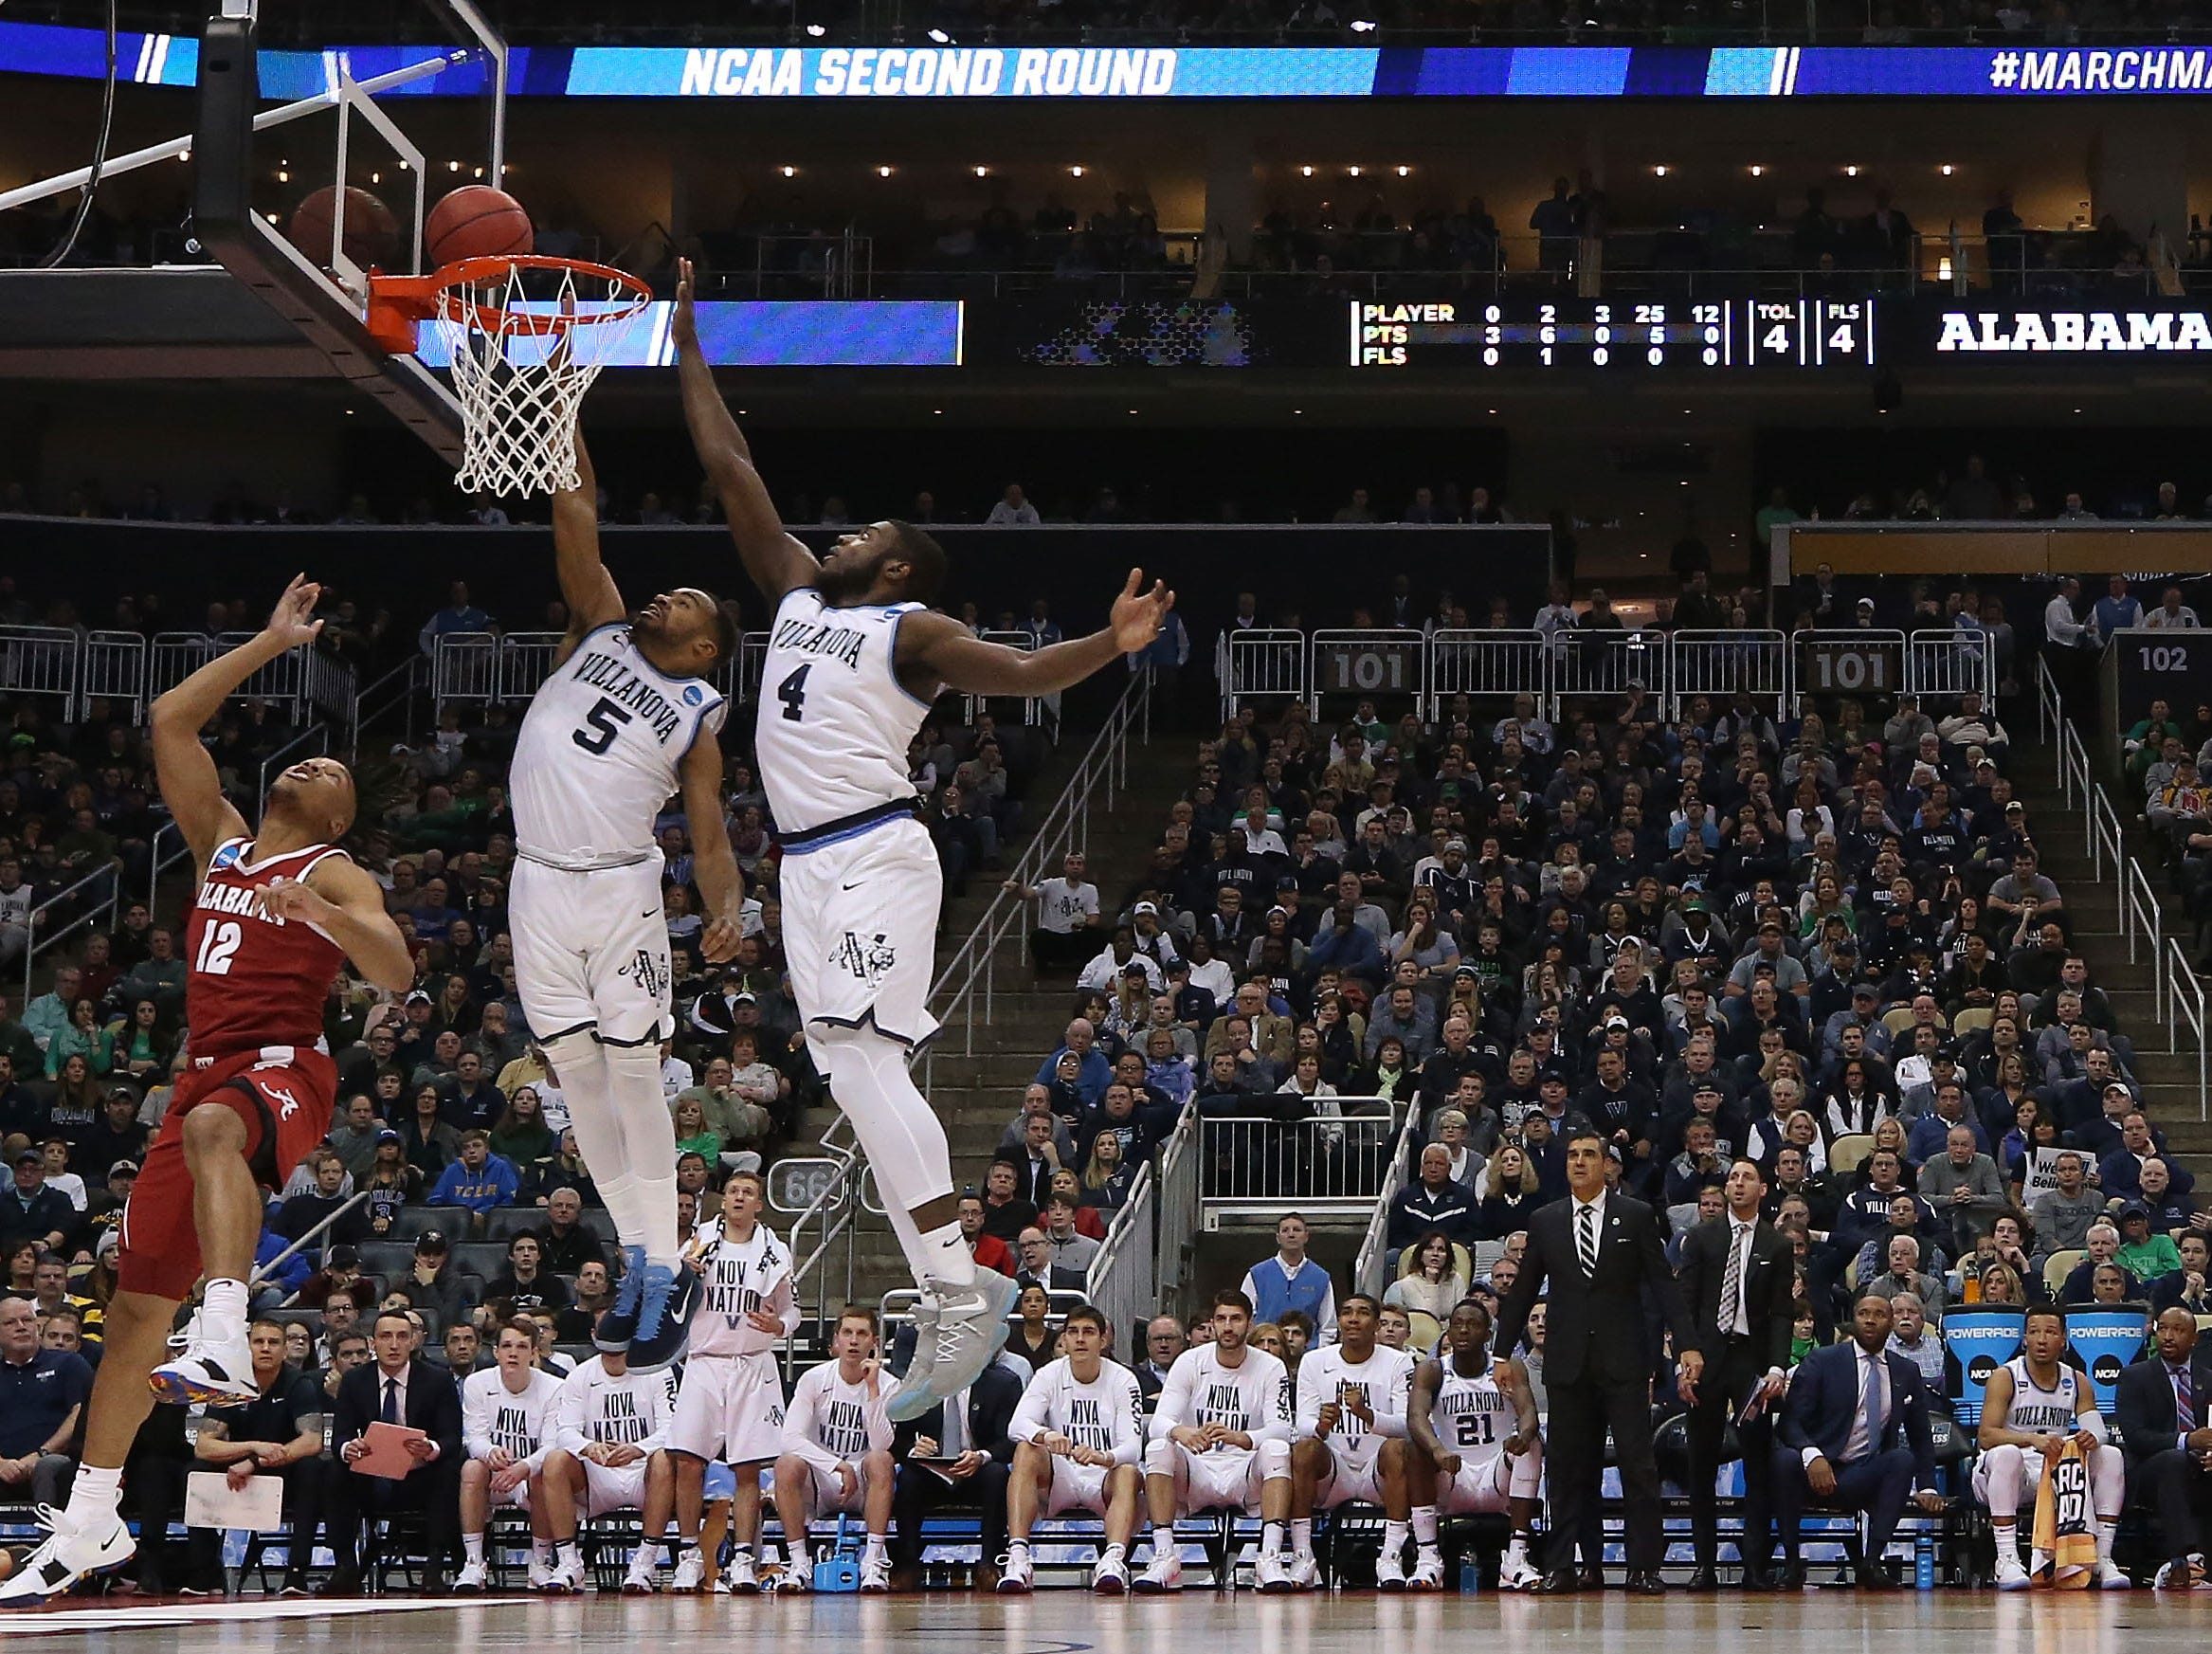 Mar 17, 2018; Pittsburgh, PA, USA; Villanova Wildcats guard Phil Booth (5) blocks the shot of Alabama Crimson Tide guard Dazon Ingram (12) in the second round of the 2018 NCAA Tournament at PPG Paints Arena. Mandatory Credit: Geoff Burke-USA TODAY Sports